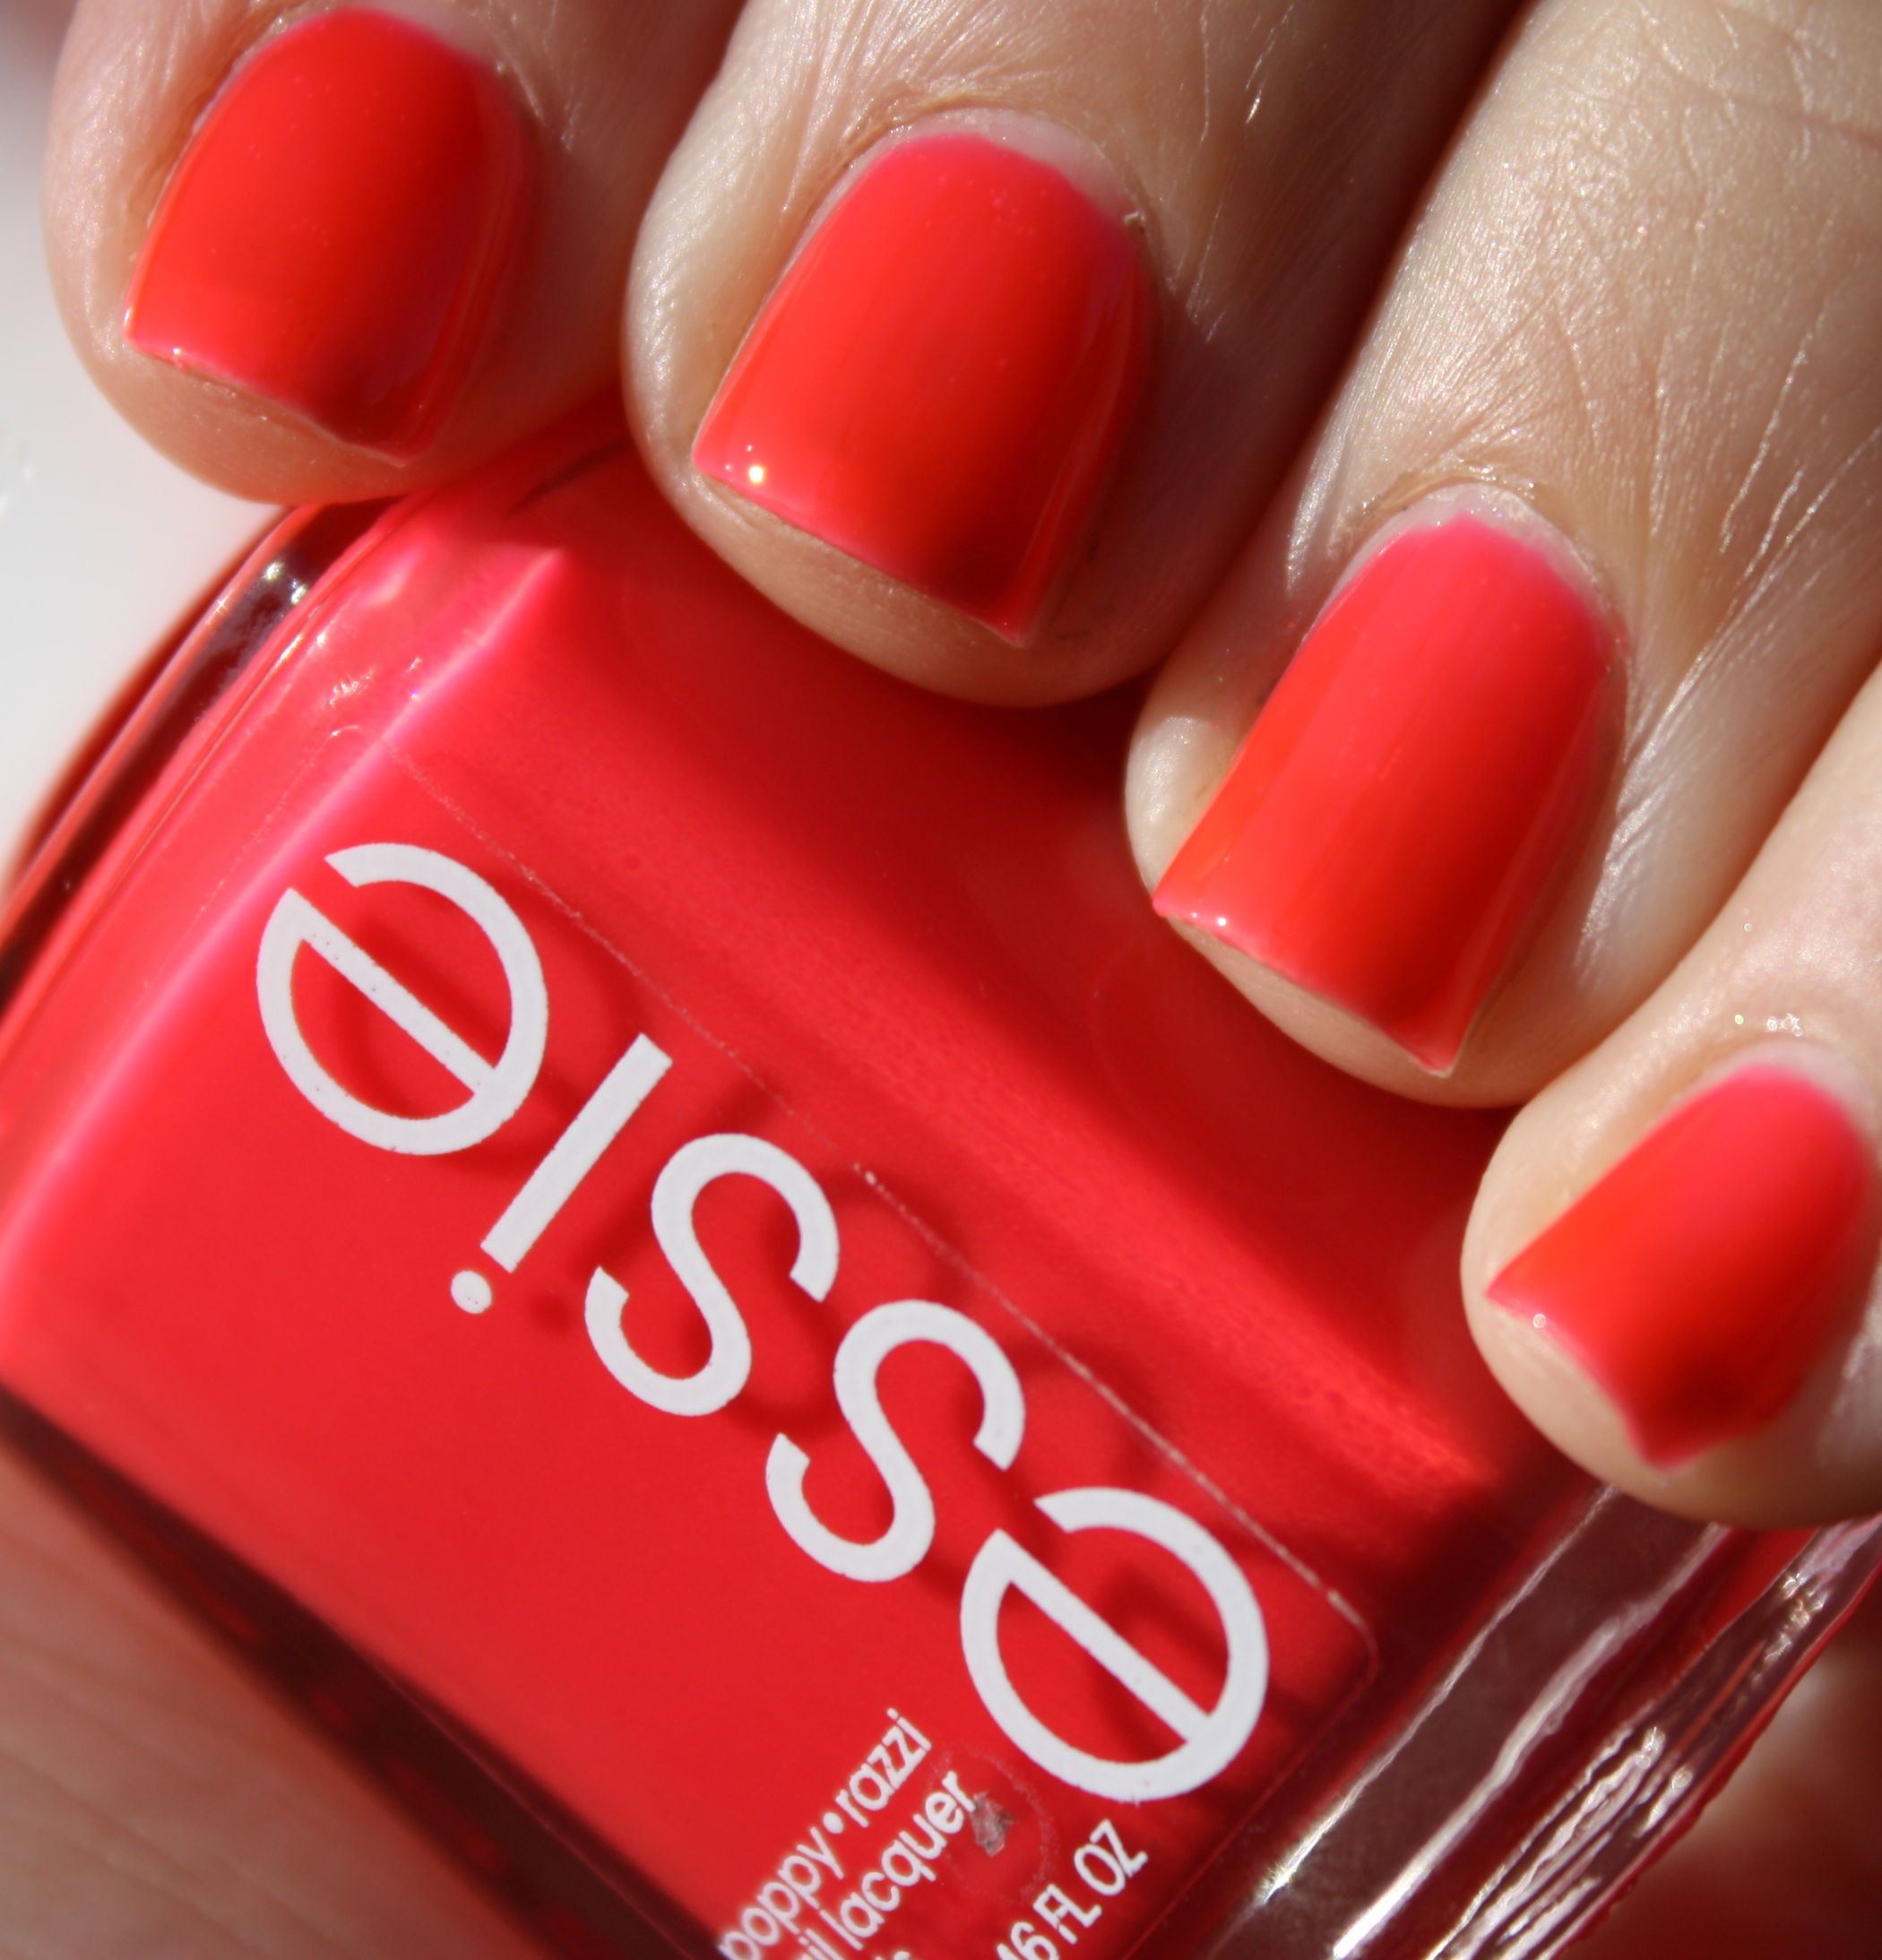 essie poppy razzi – horrendous color